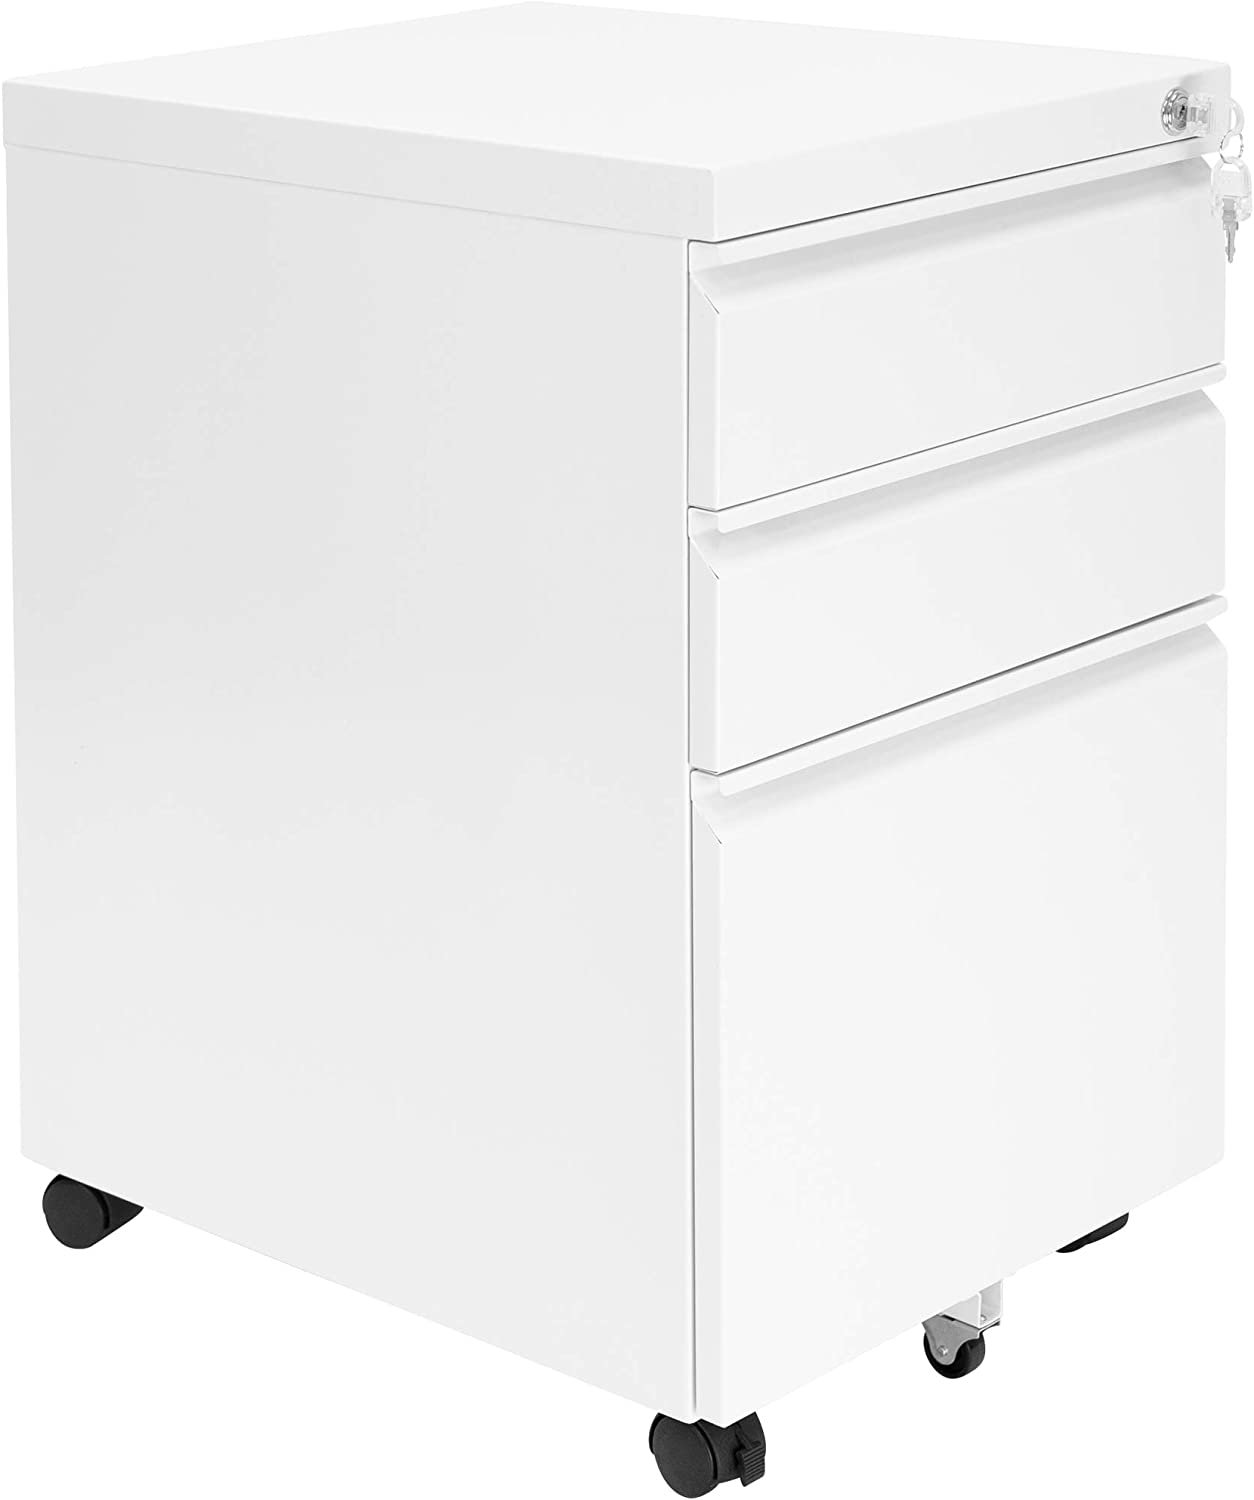 MOUNT-IT! 3 Drawer Cabinet for Under Desk with Wheels | Rolling Storage with Lock for Supplies, Files, and Materials, Mobile Space Saving for Home and Office (White)